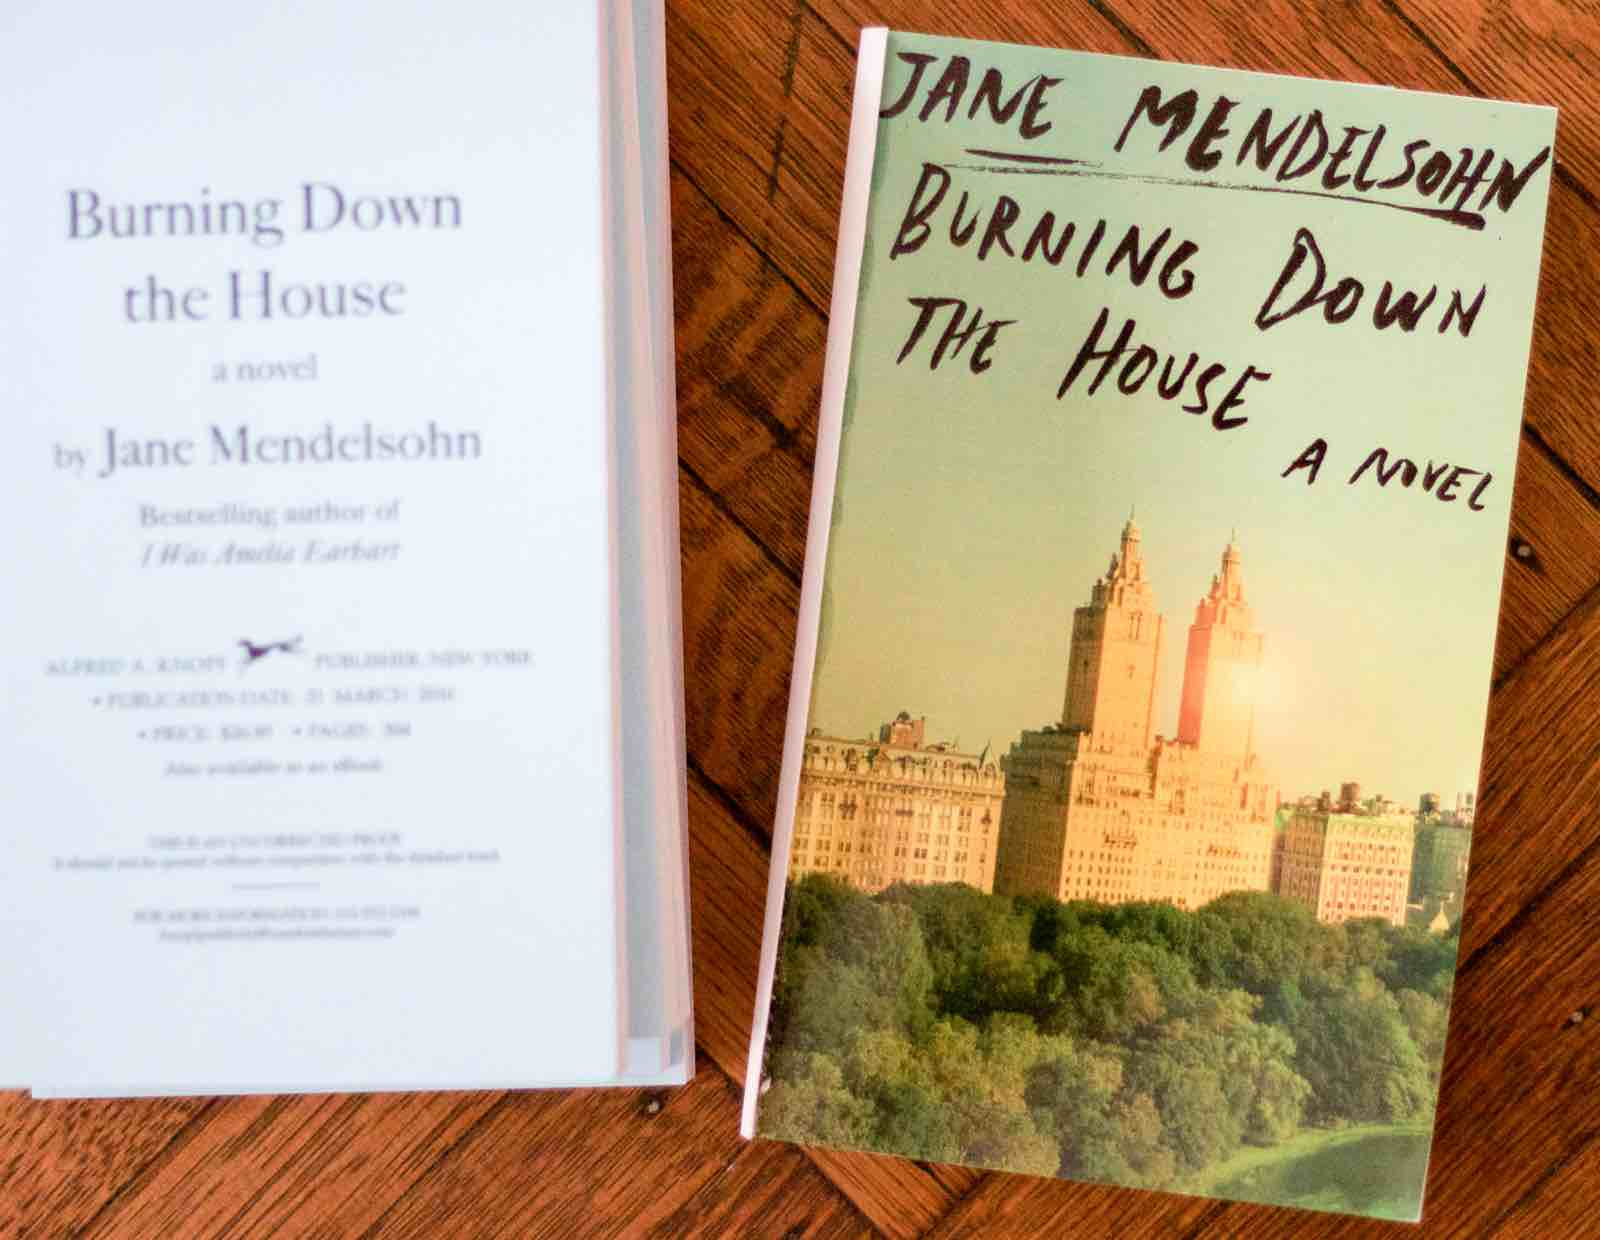 Novelist, Writer, Jane Mendelsohn at home, Advance Copy of Burning Down the House | Fabulous Fabsters